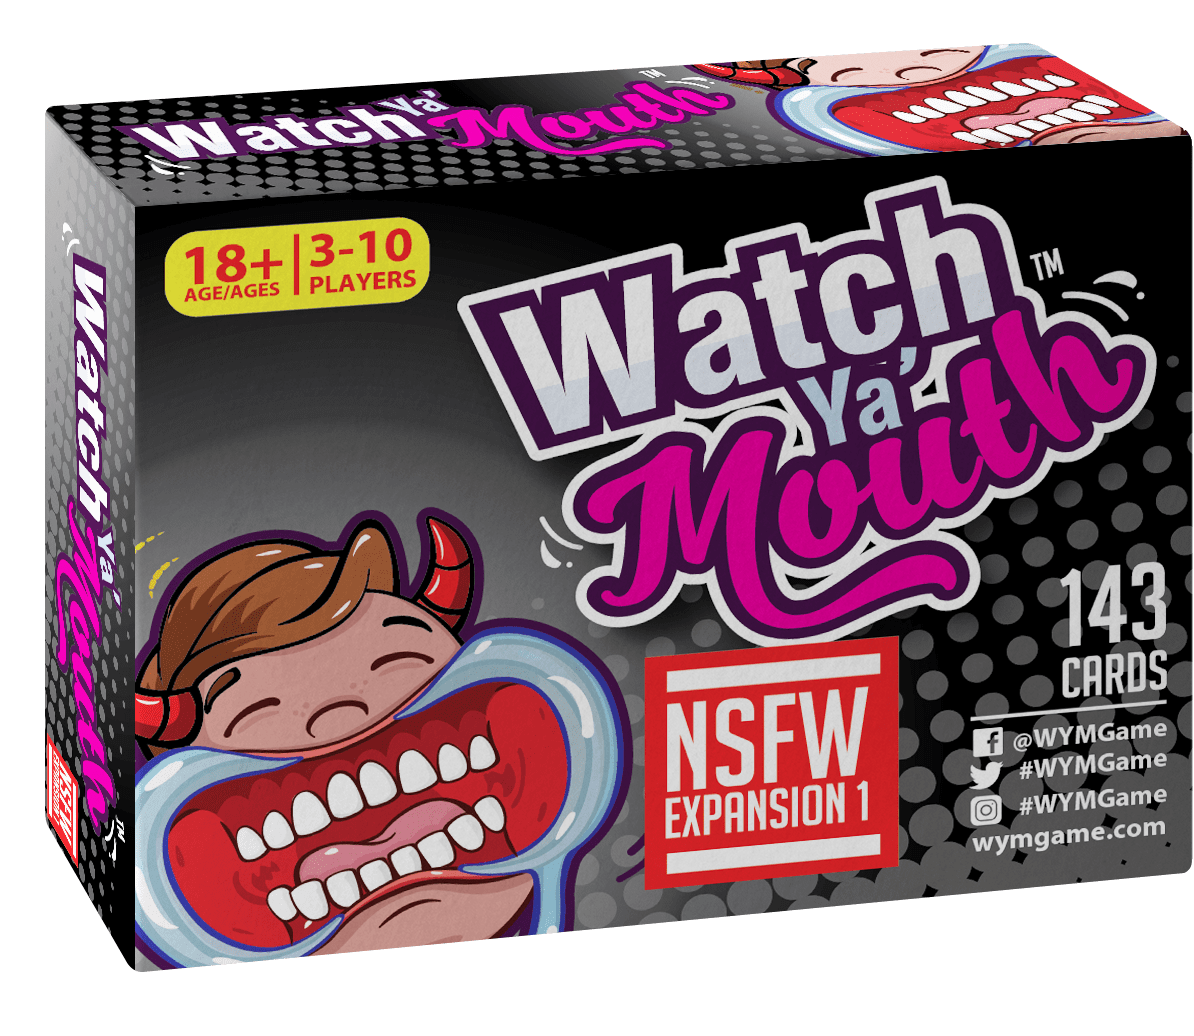 Watch Ya Mouth NSFW Expansion Pack #1